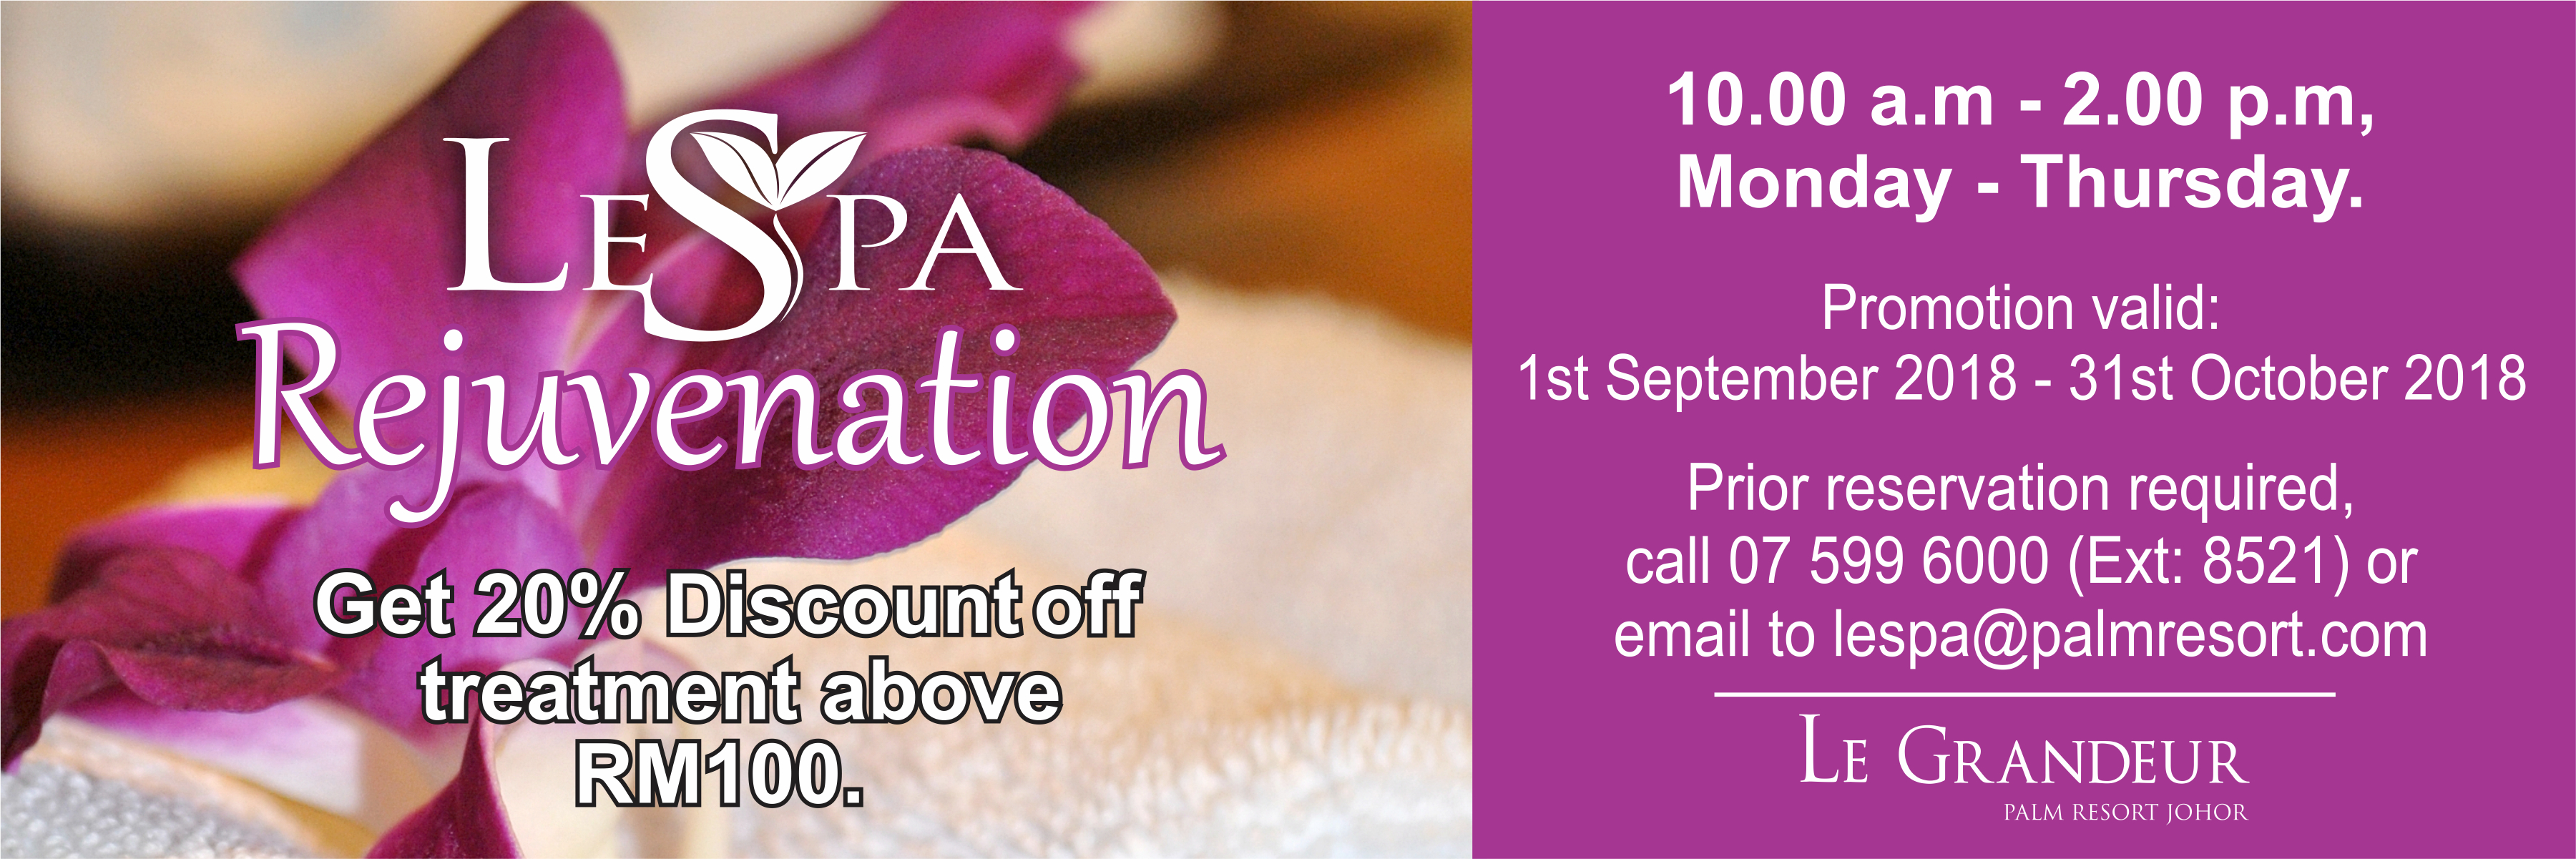 Le Spa Rejuvenation